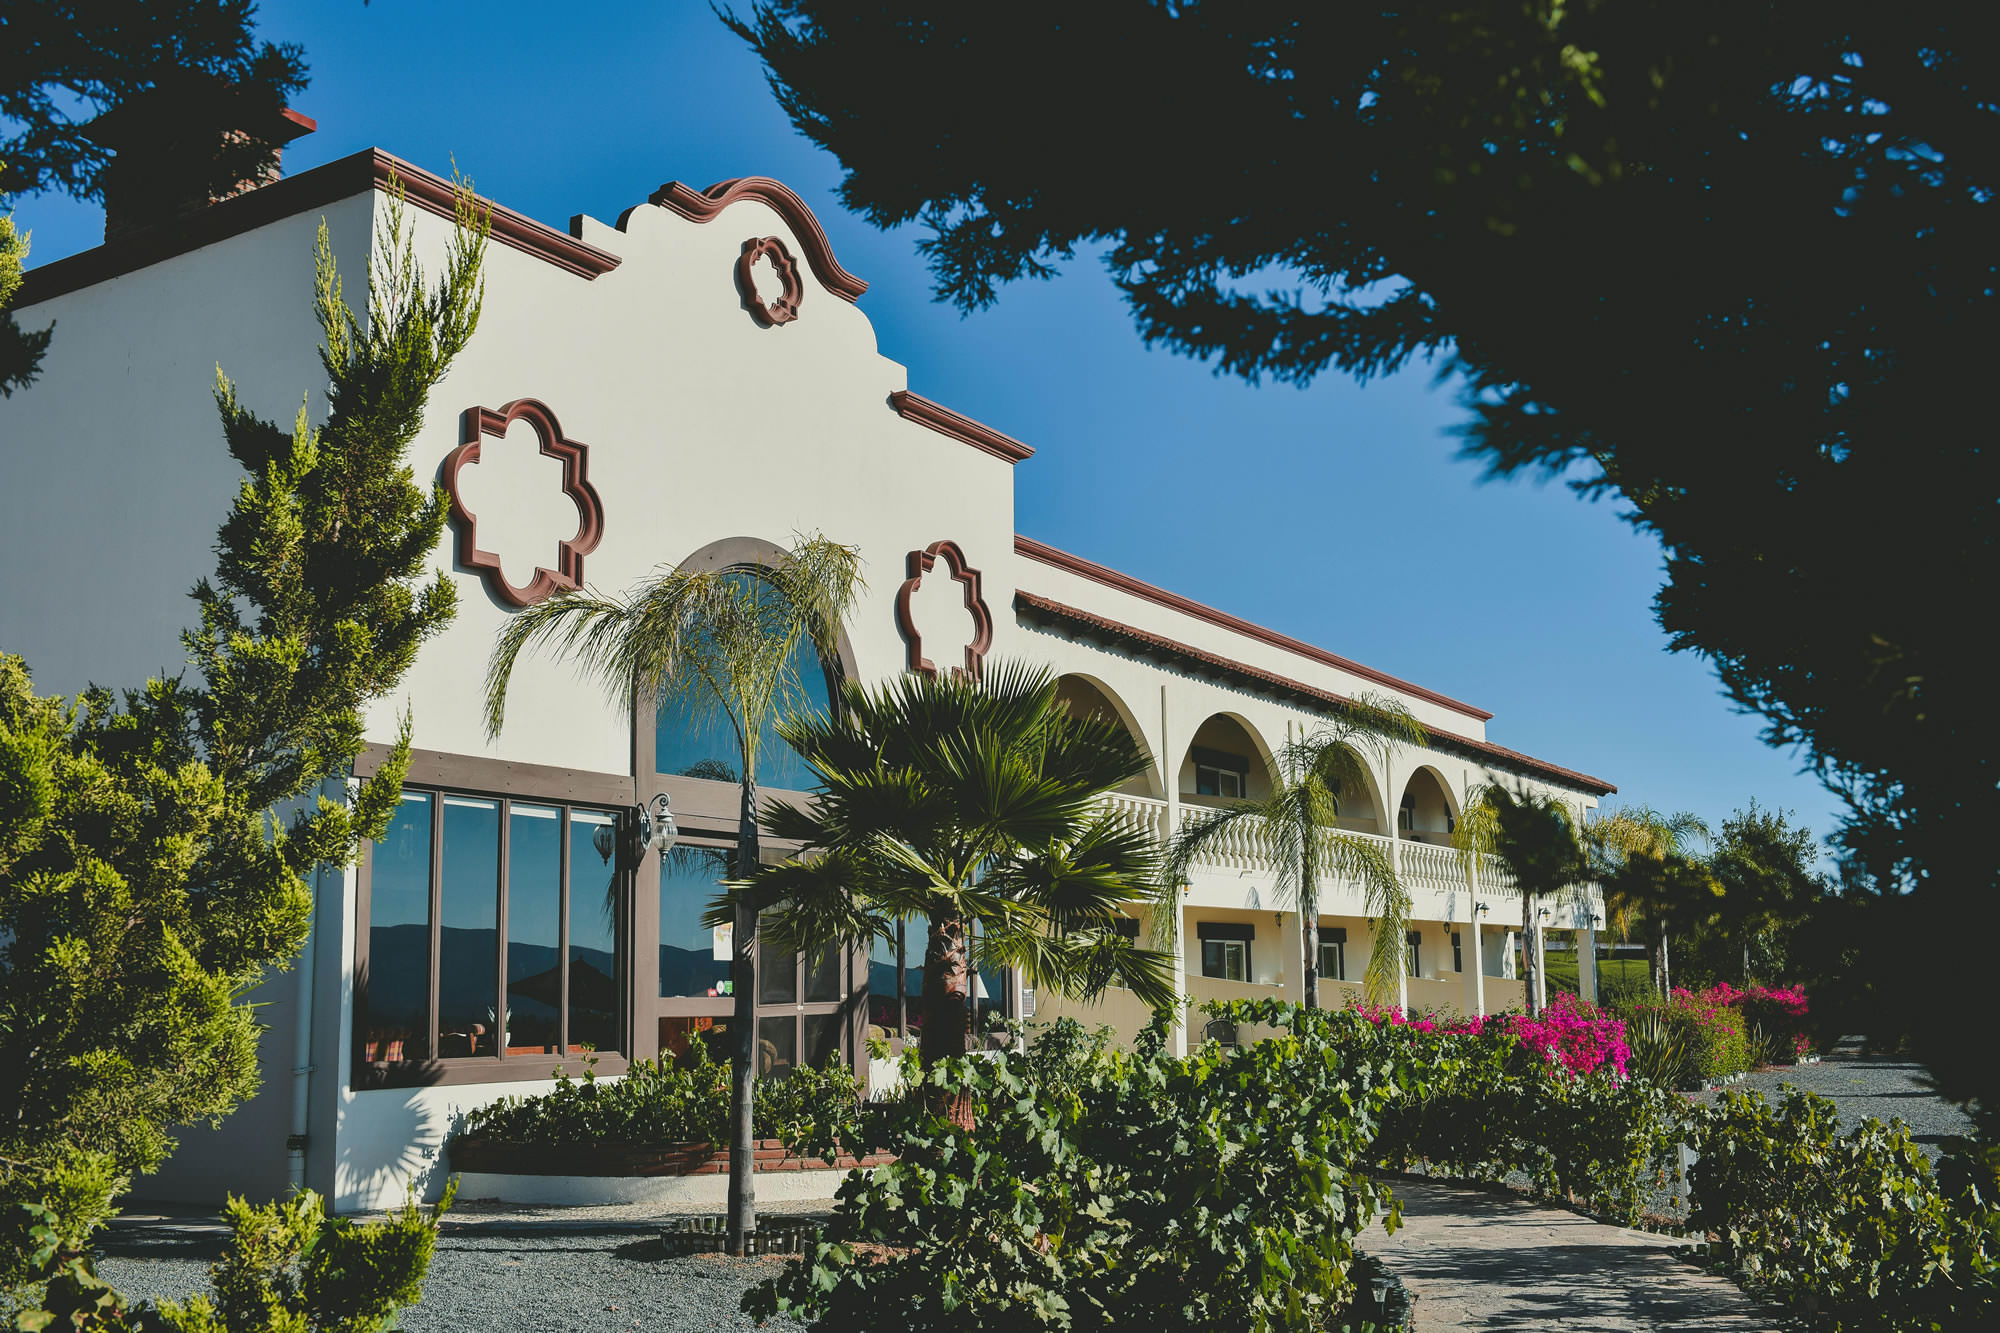 Hacienda Guadalupe Ensenada